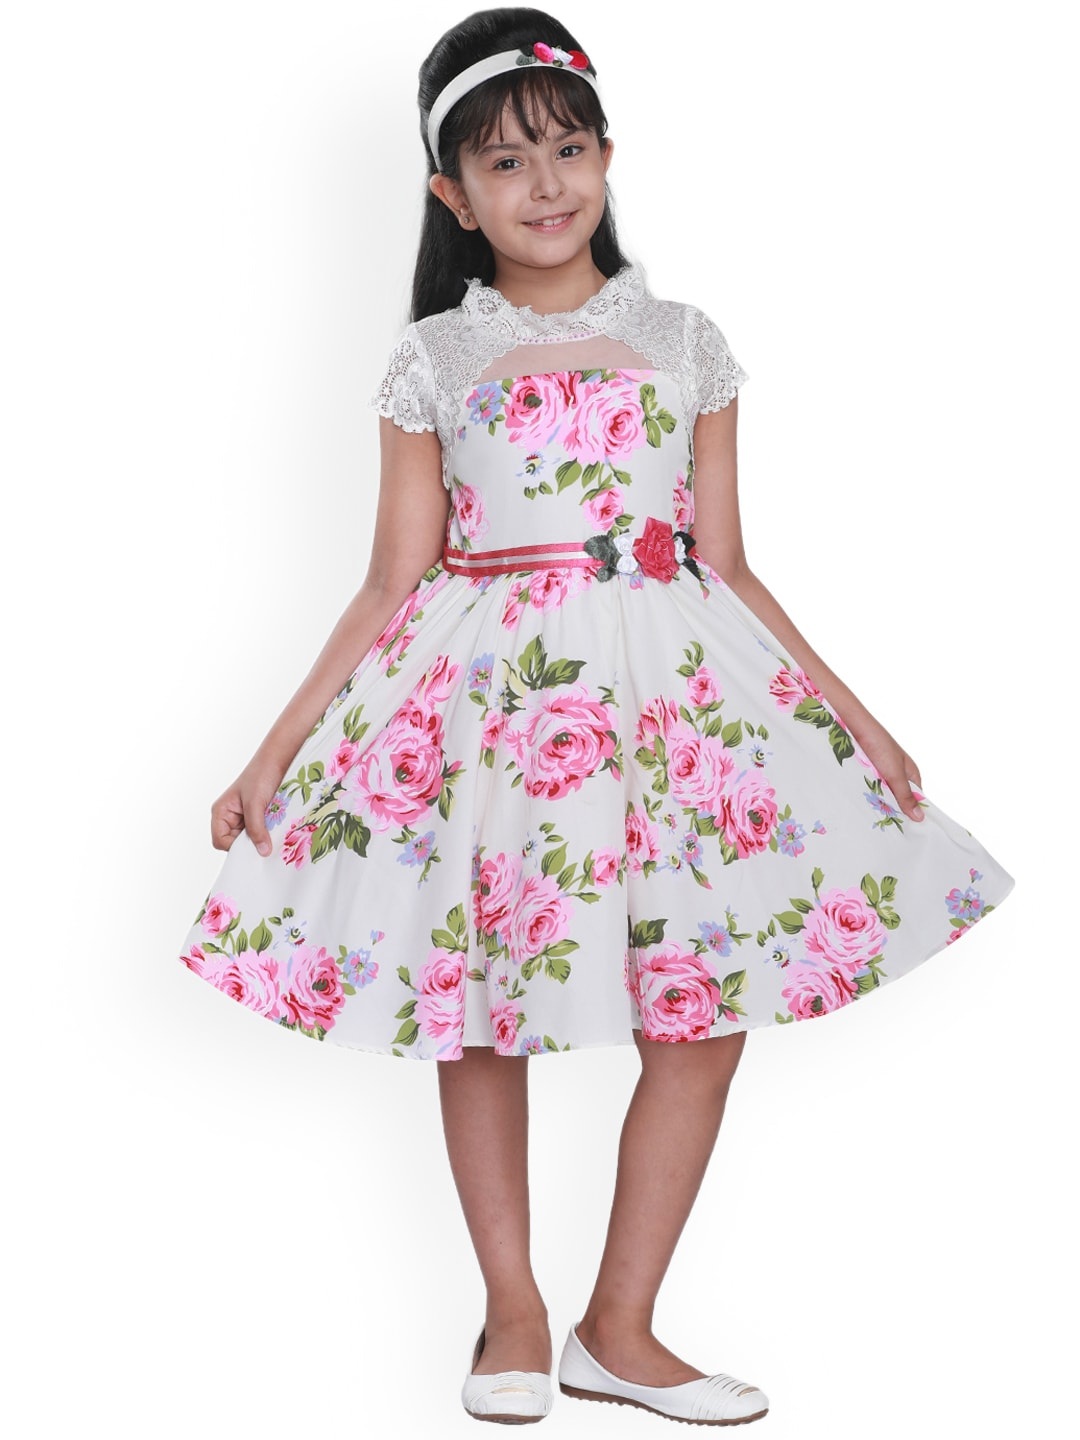 e579d8eeaec Girls Clothes - Buy Girls Clothing Online in India